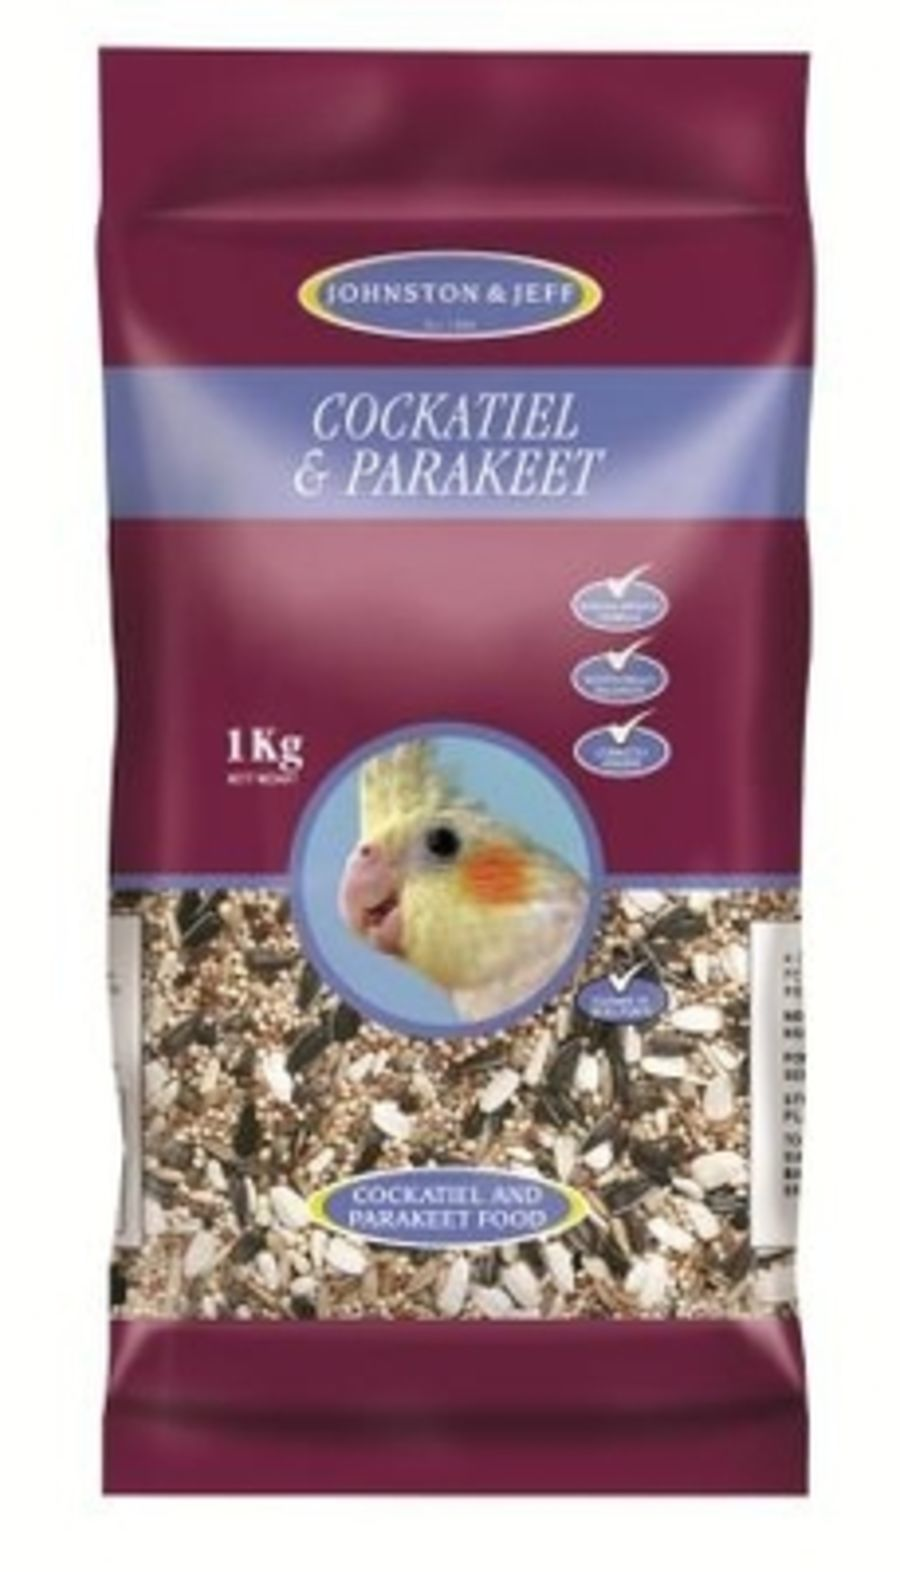 Johnston & Jeff Cockatiel & Parakeet 1kg